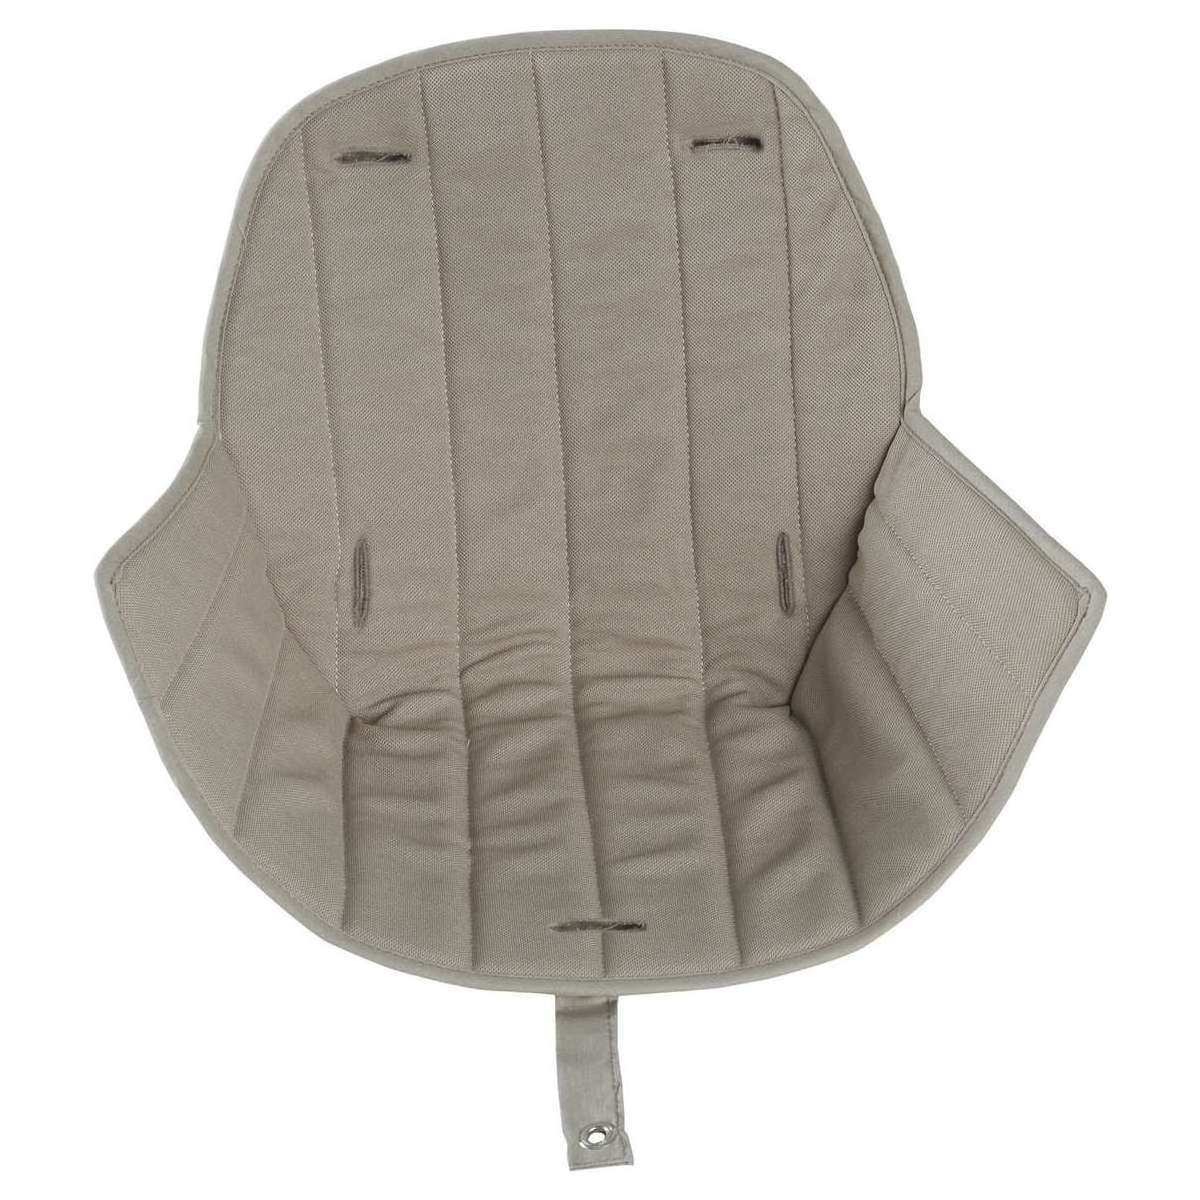 Chaise haute Assise Ovo - Beige Assise Ovo - Beige